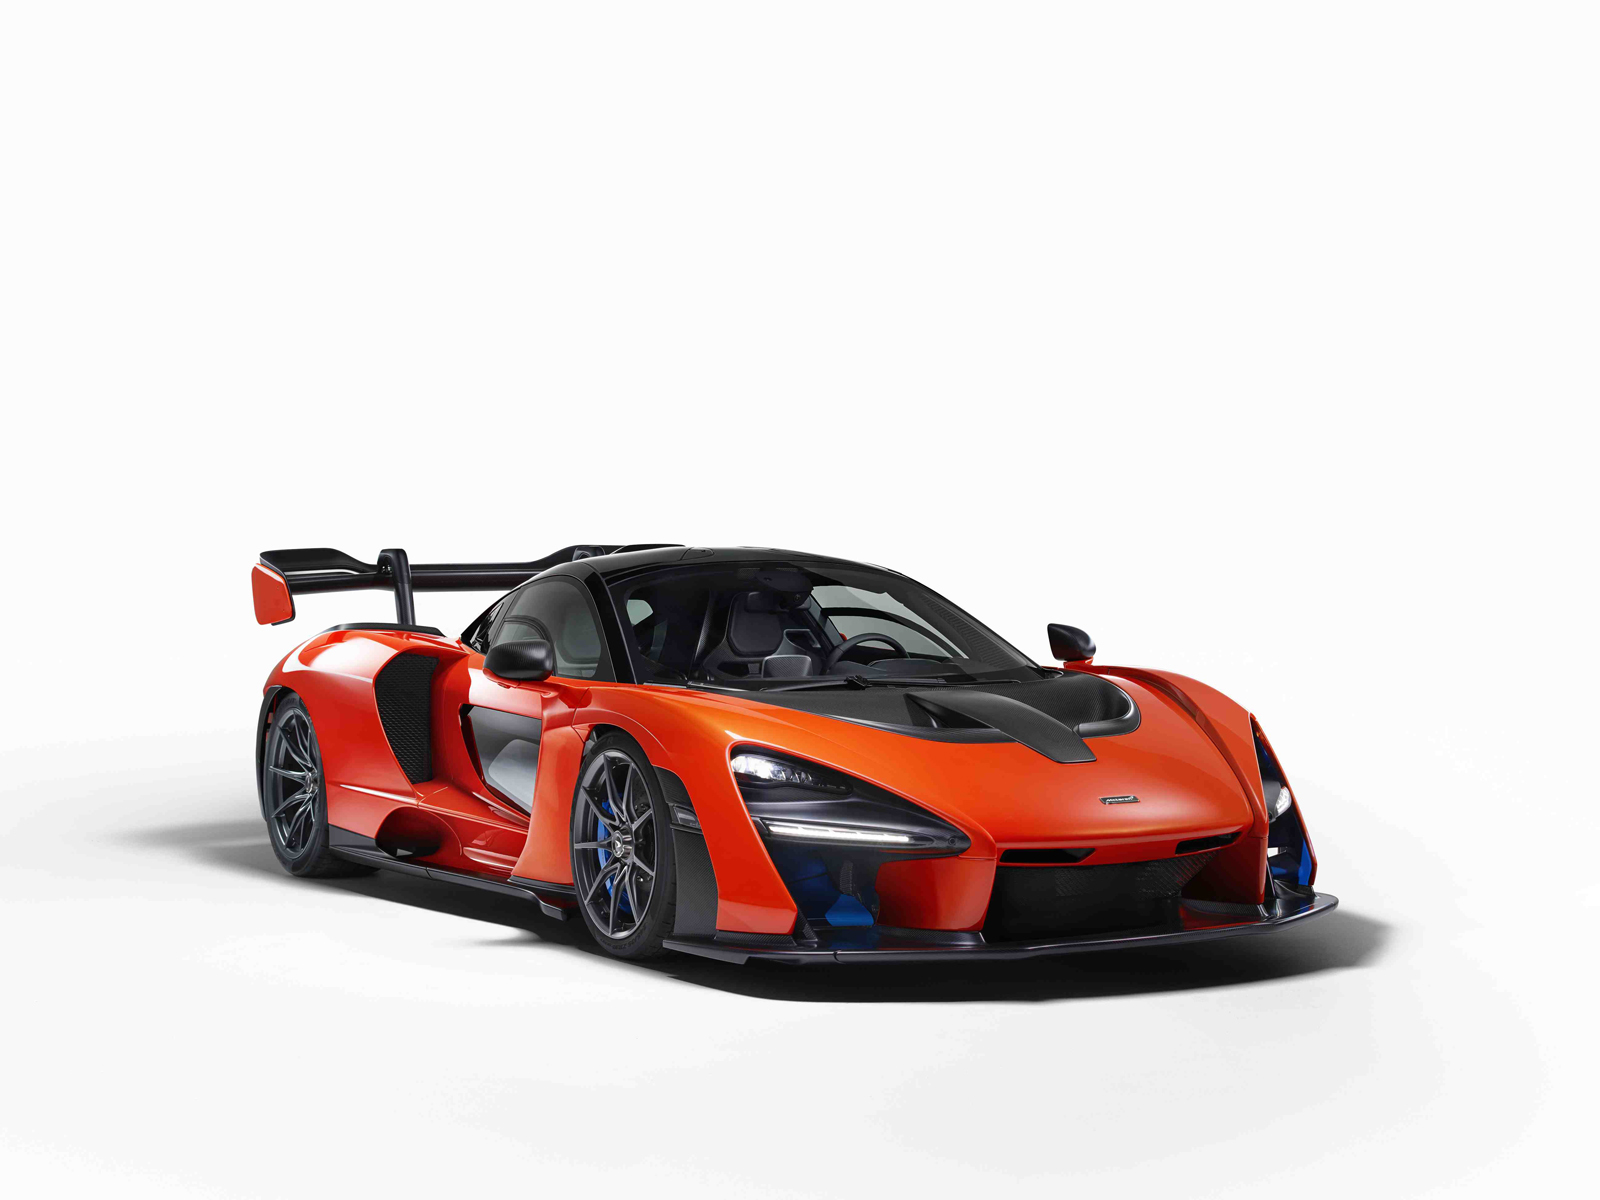 the mclaren senna is one of the wildest road legal cars ever